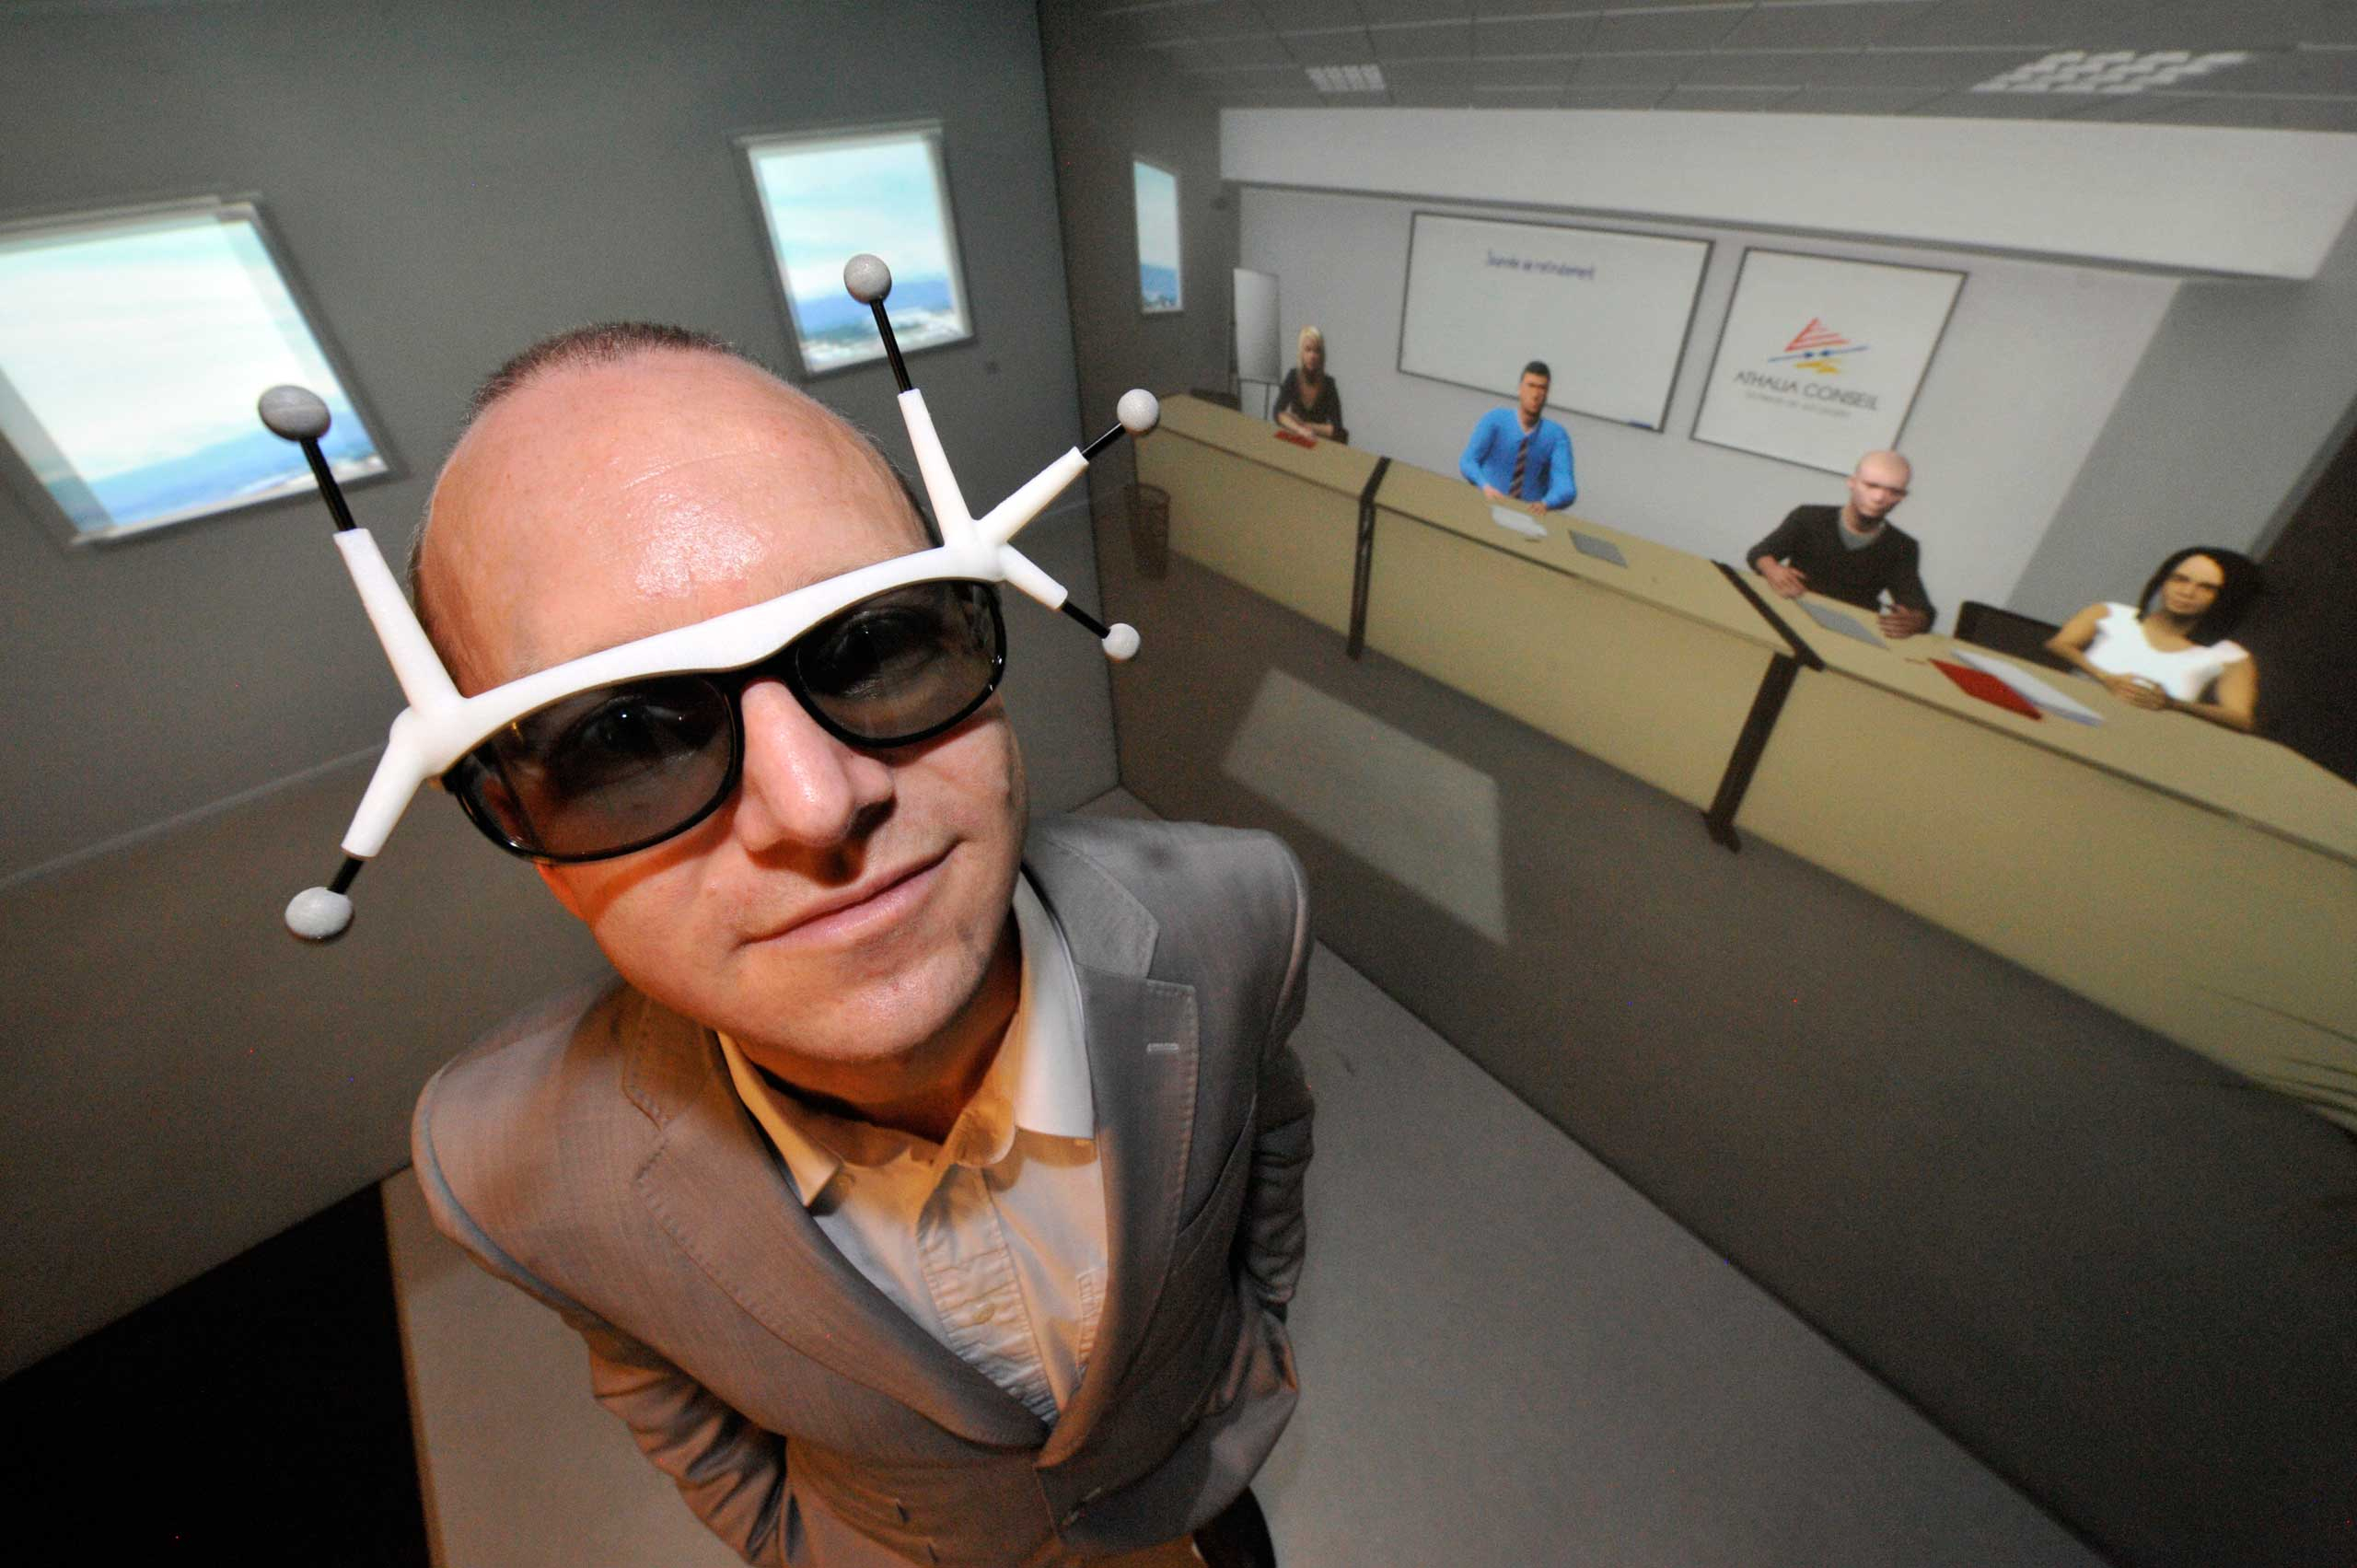 2012                                                              A man seeking a job was equipped with 3D spectacles with sensors as he trained in Clermont-Ferrand, central France with avatars (background) in a virtual reality cube, at business incubator Pascalis.